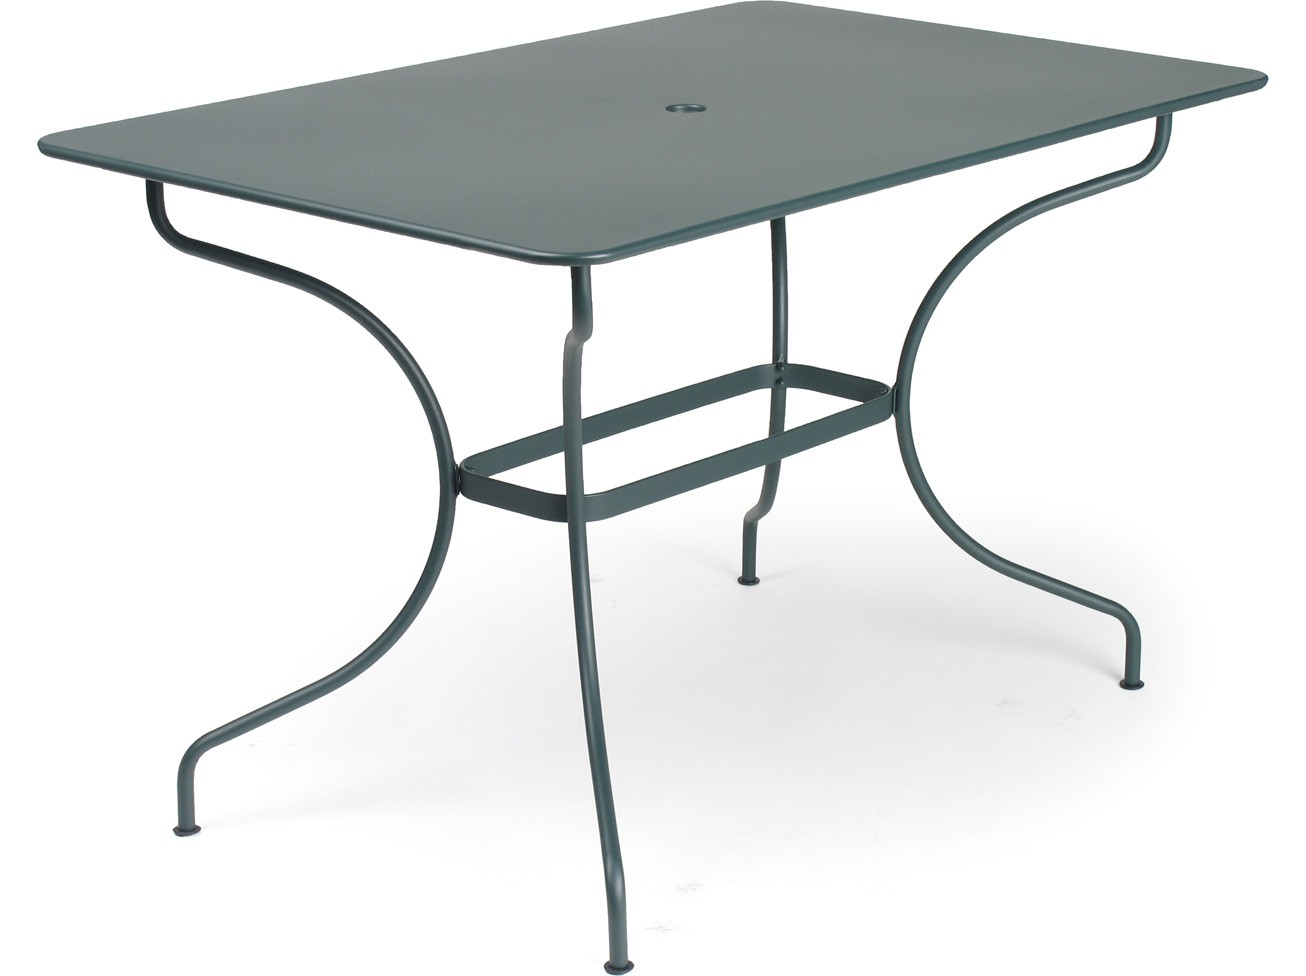 Fermob table opera rectangulaire pour 6 pers - Fermob opera table ...